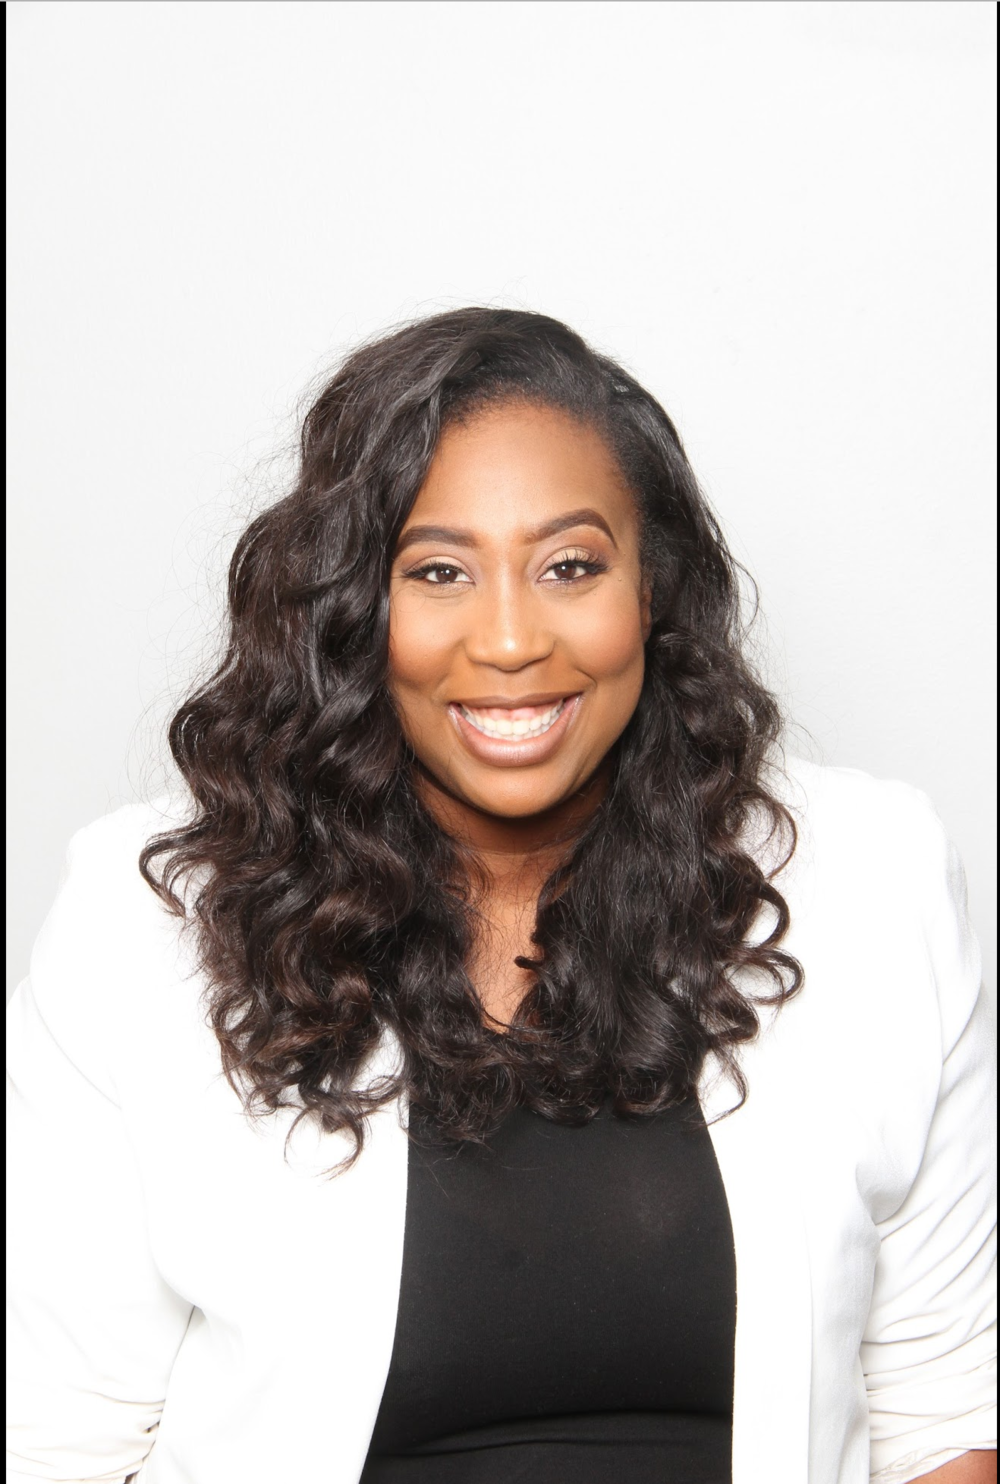 "Erika Bennett Erika is a senior vice president of Allied Moxy, a division of Allied Integrated Marketing, dedicated to developing and executing campaigns that celebrate the full diversity of multicultural consumers. Under her leadership at Moxy, she has shepherded the division to unprecedented growth and her career successes include delivering record-breaking results for successes such as ABC's ""black-ish"", Netflix and Marvel's ""Luke Cage"" and theatrical phenoms, HIDDEN FIGURES, FENCES and STRAIGHT OUTTA COMPTON. She remains committed to re-writing the marketing playbook by driving innovation and expanding division work outside of traditional marketing to include content creation, digital, influencer marketing and social."